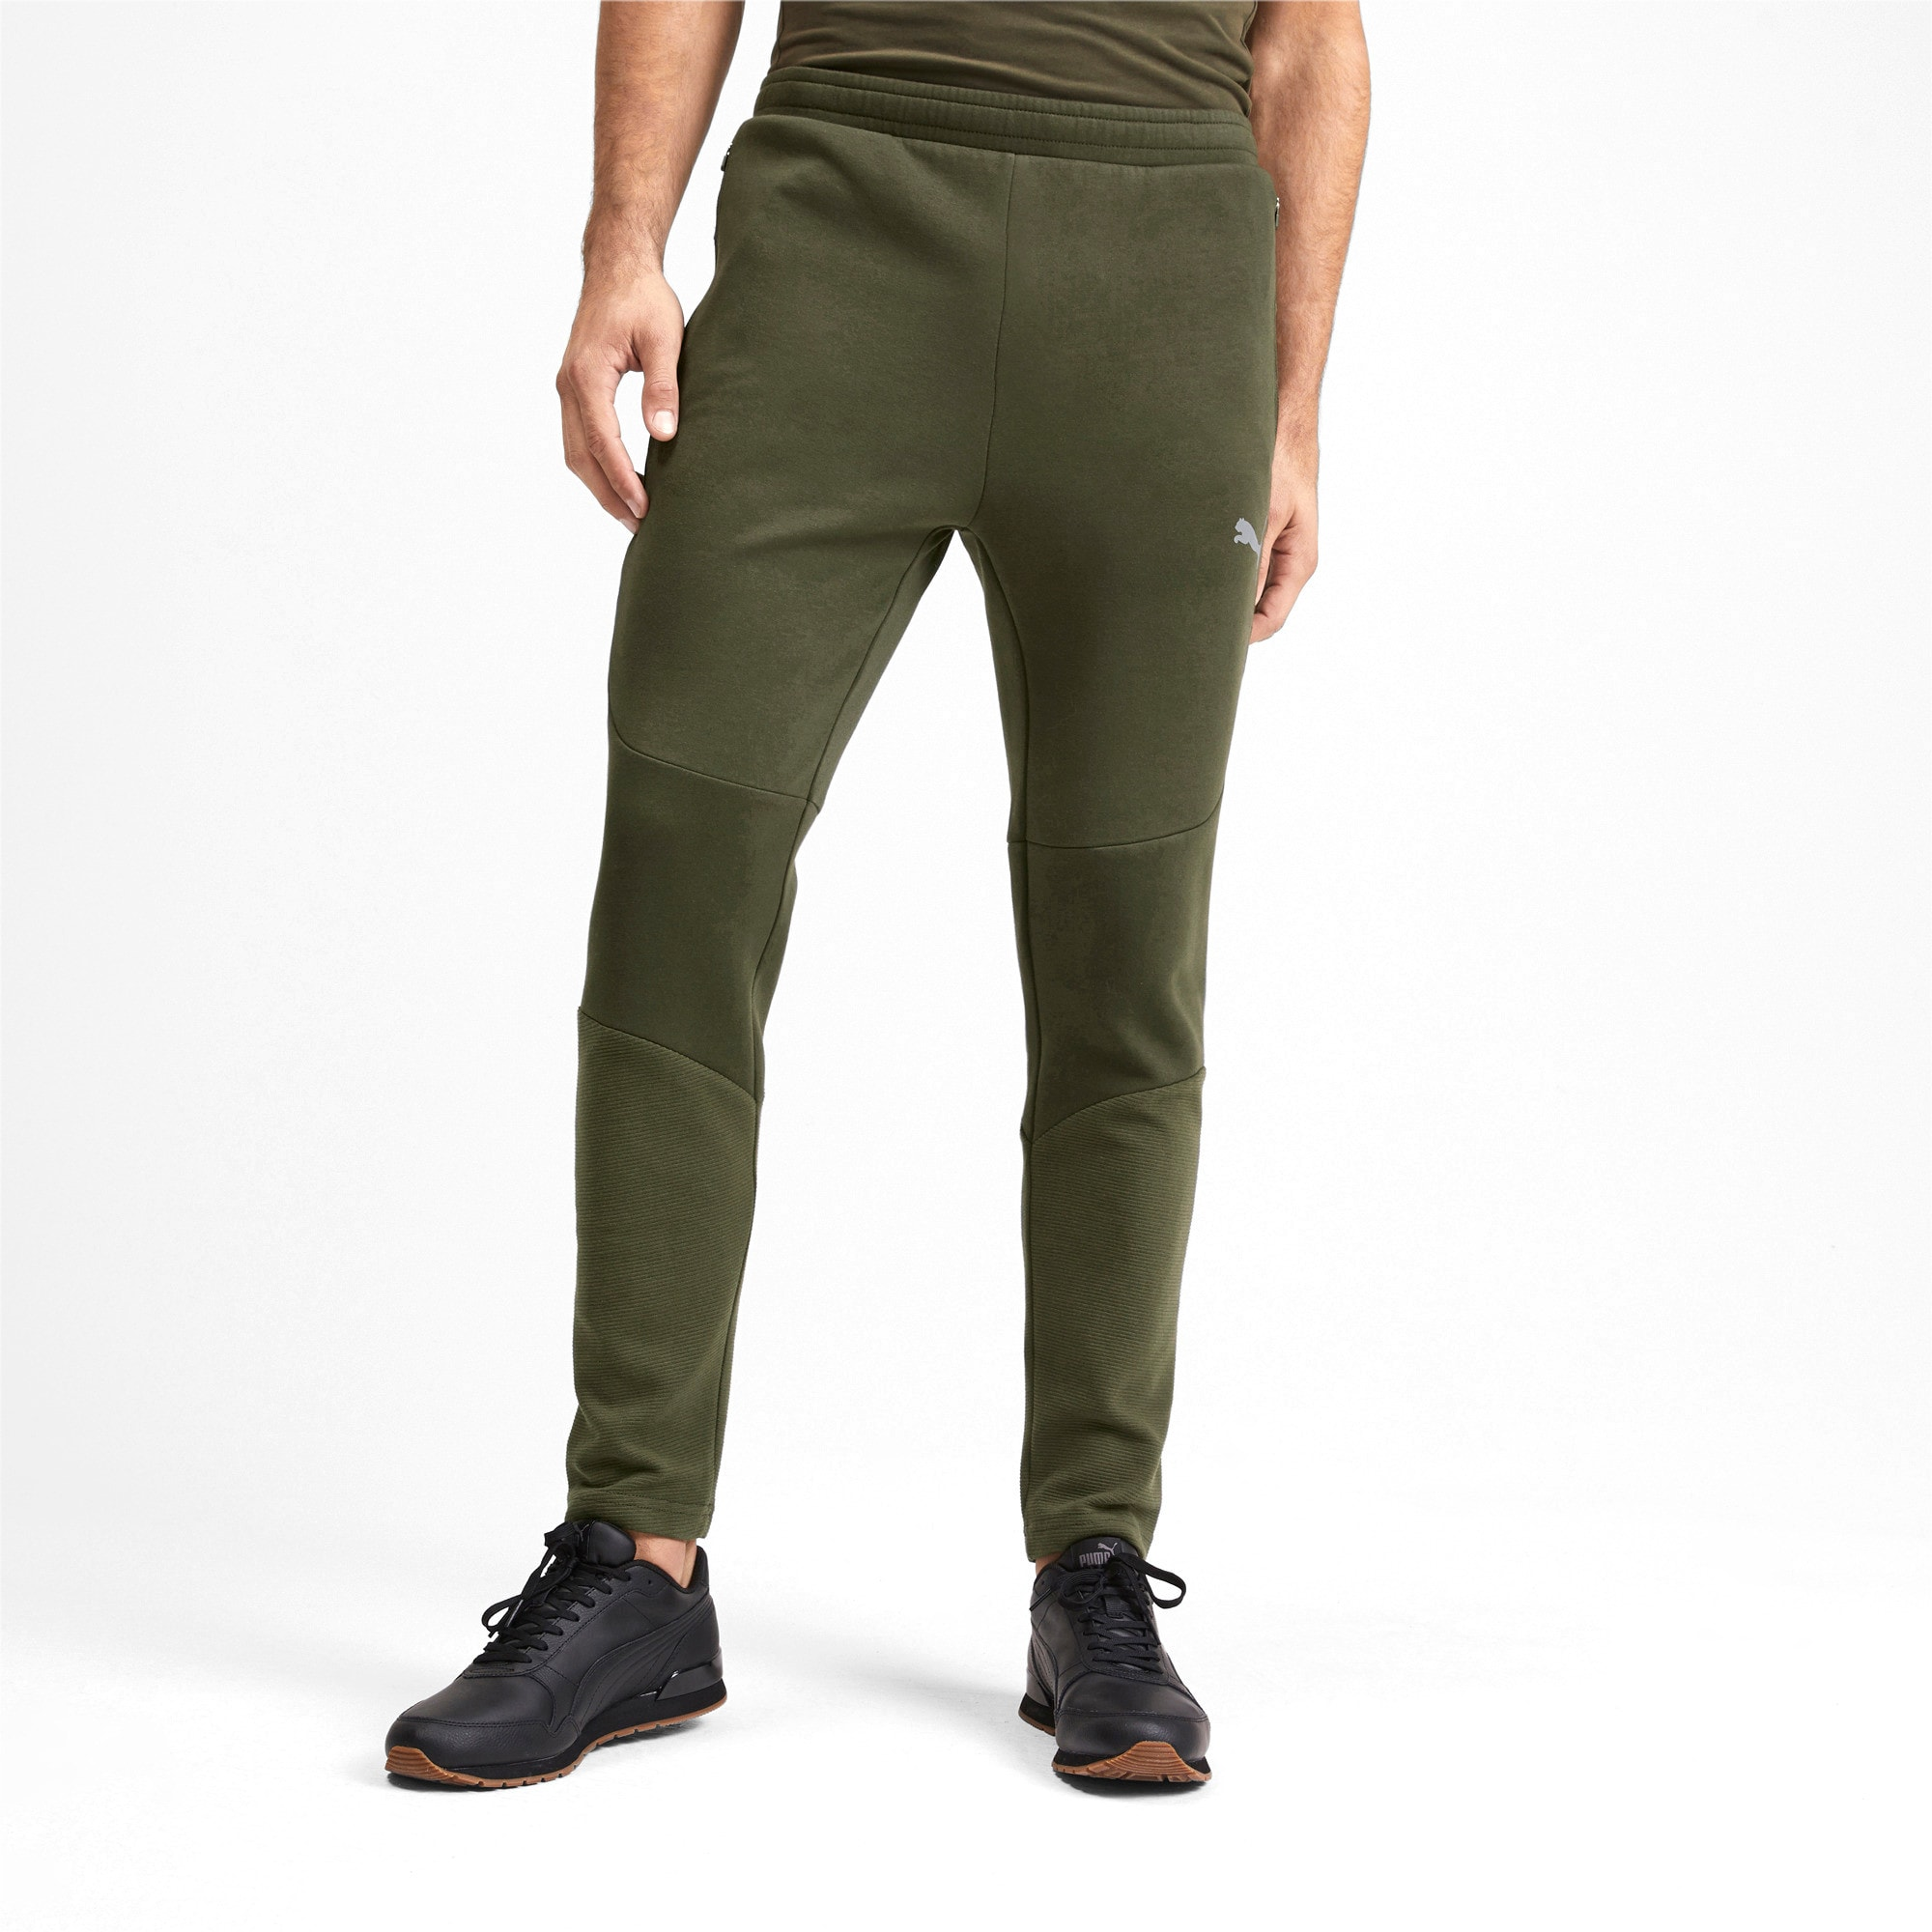 Thumbnail 1 of Evostripe Men's Pants, Forest Night, medium